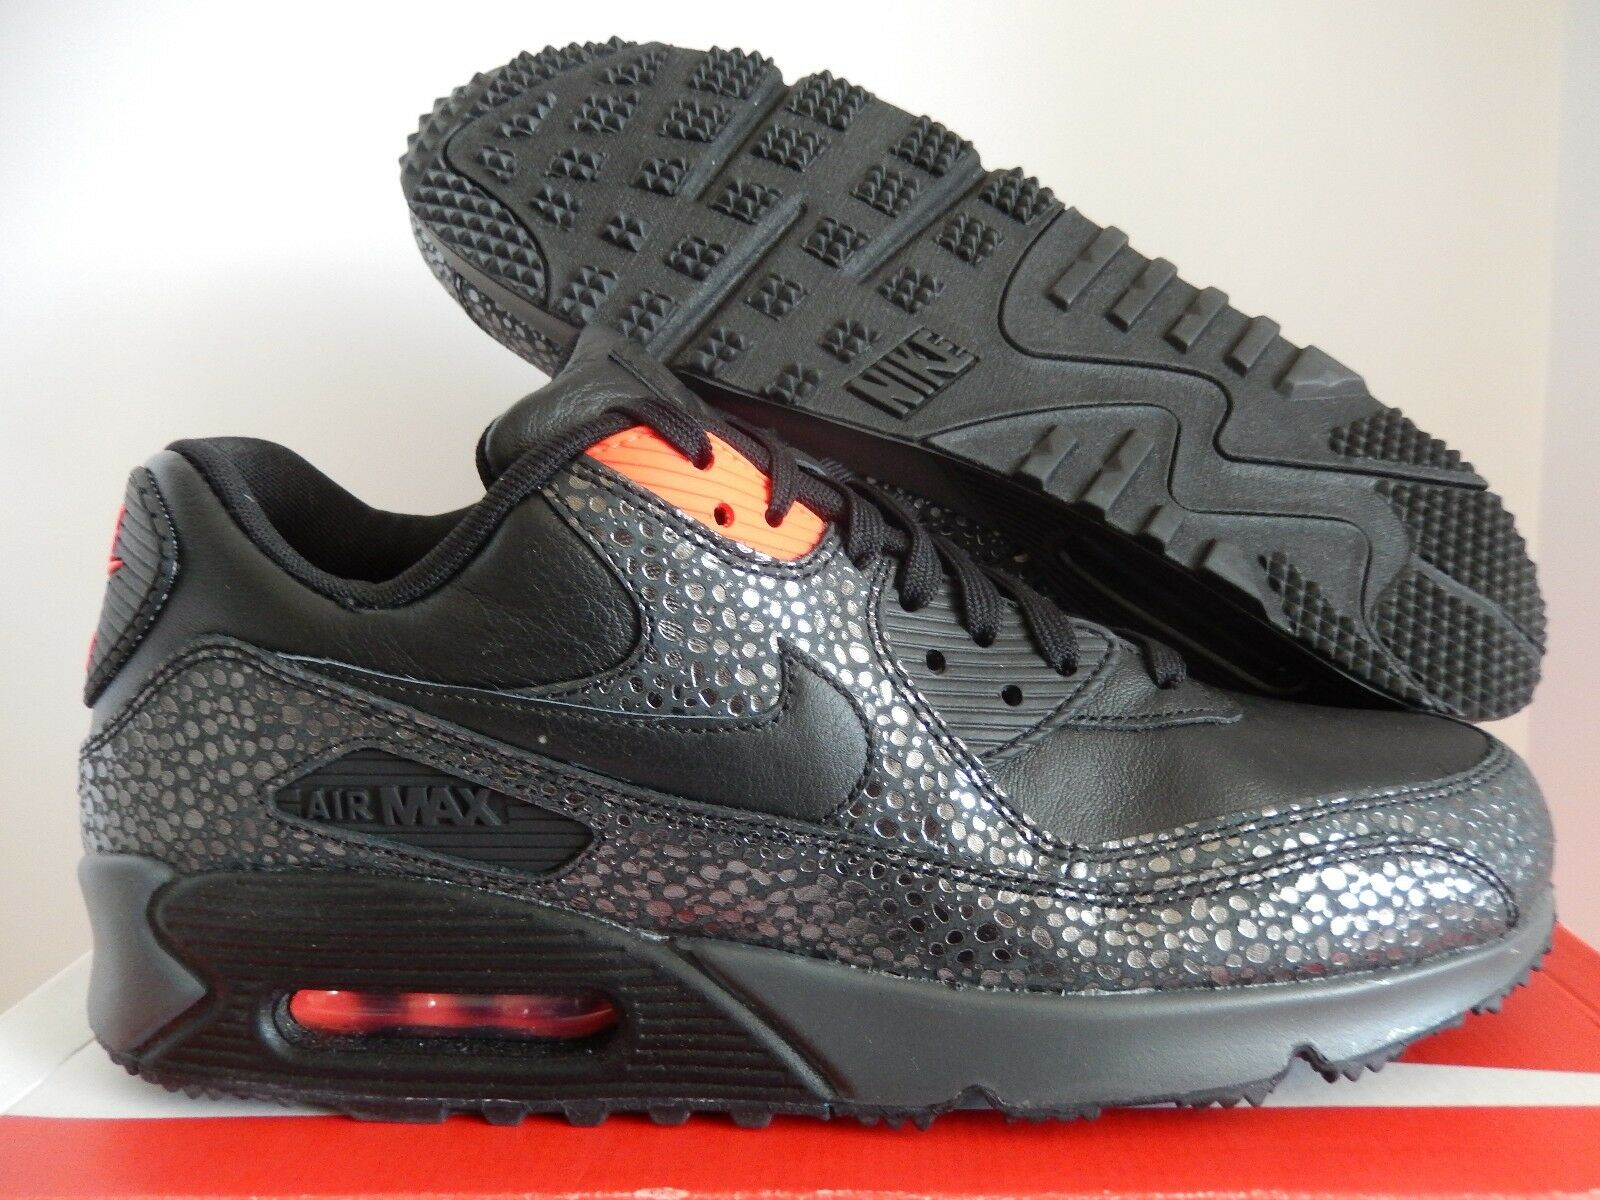 nike air max 90 deluxe black infrared camera